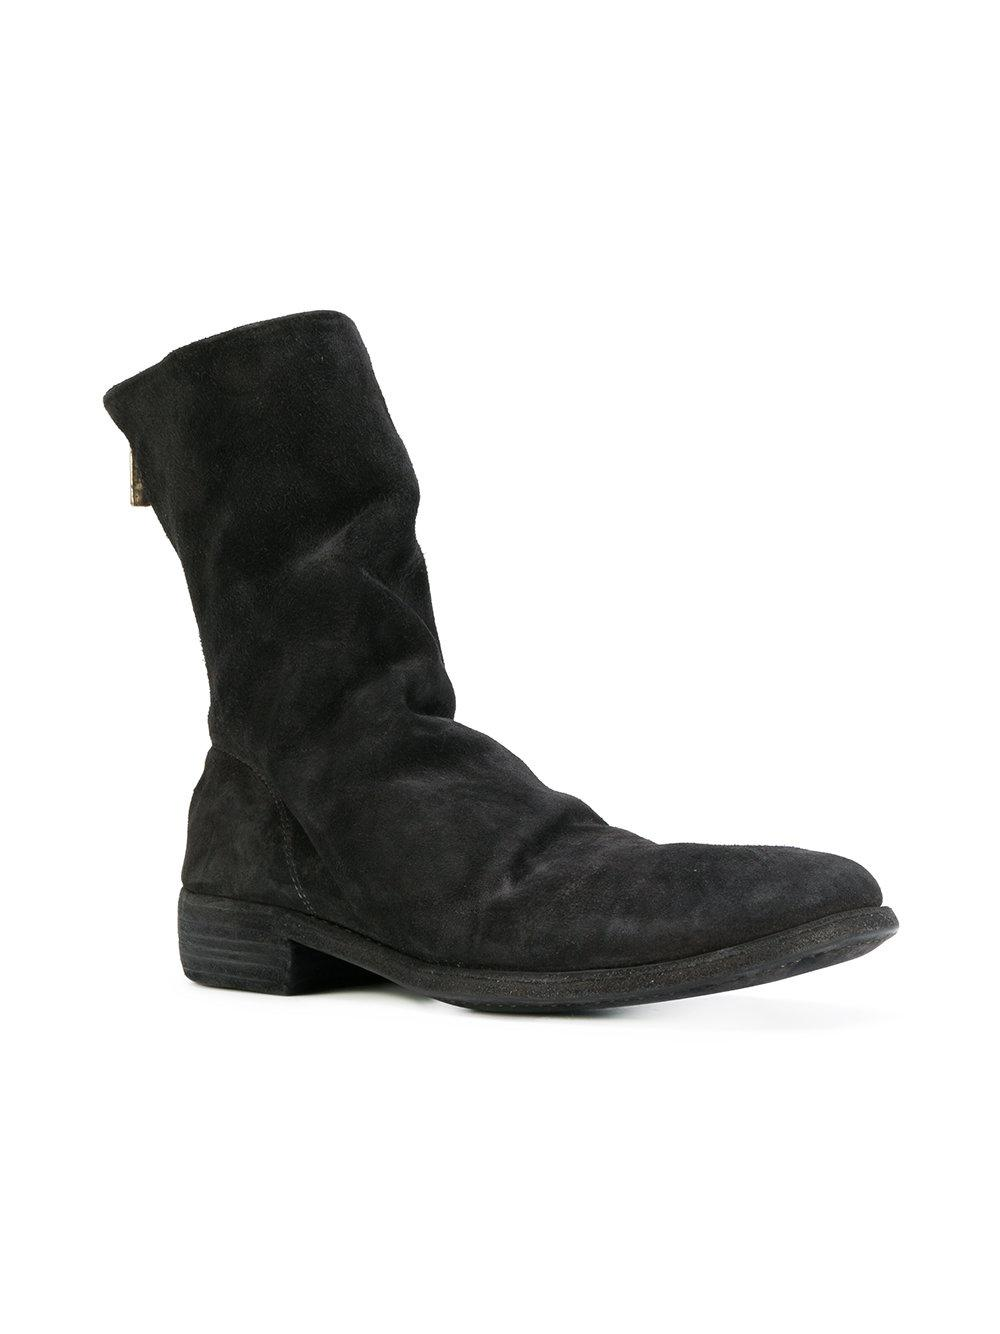 GUIDI Relaxed zipped boots mWkTLmfA8F